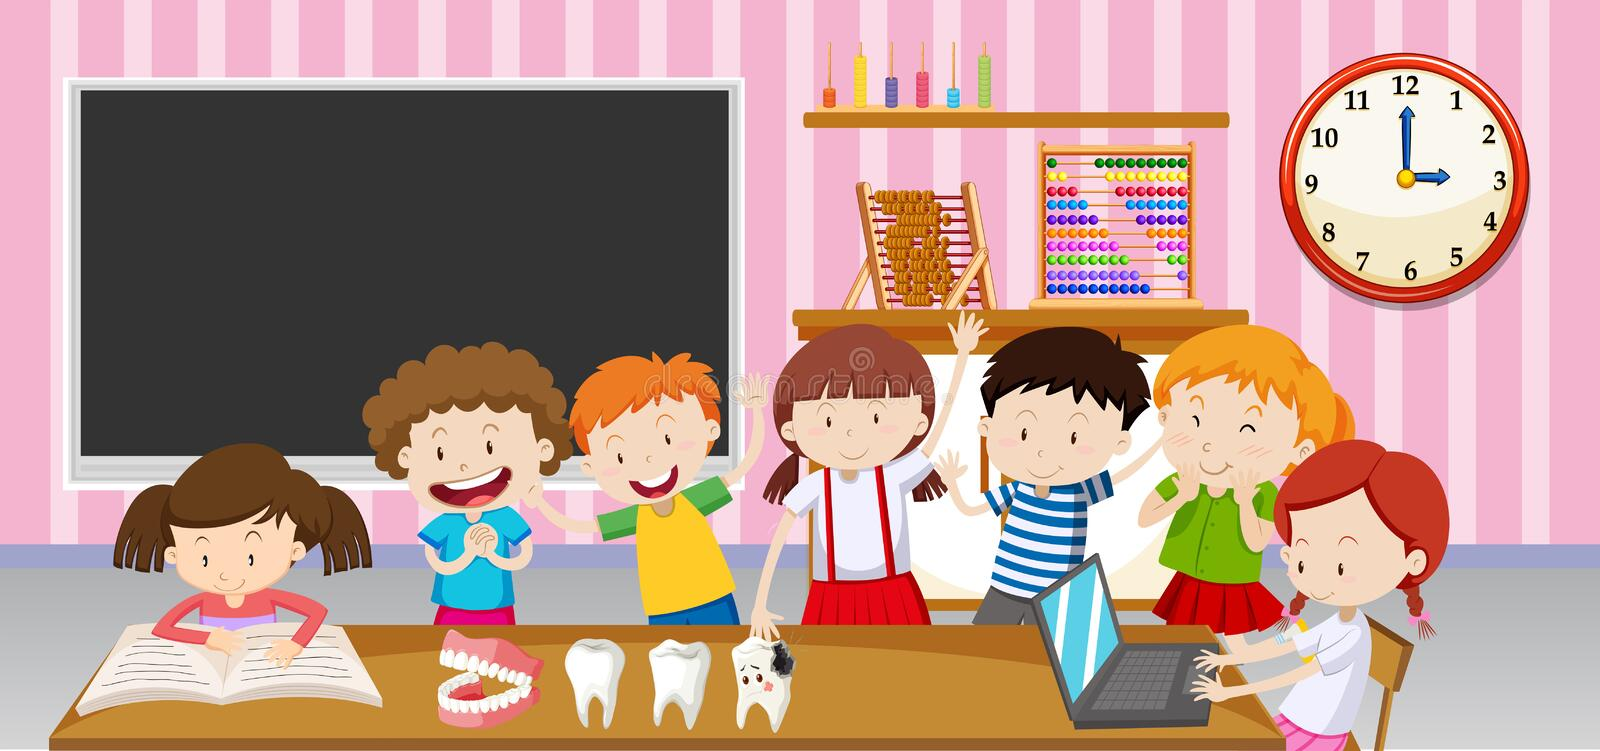 Boys and girls in the classroom vector illustration